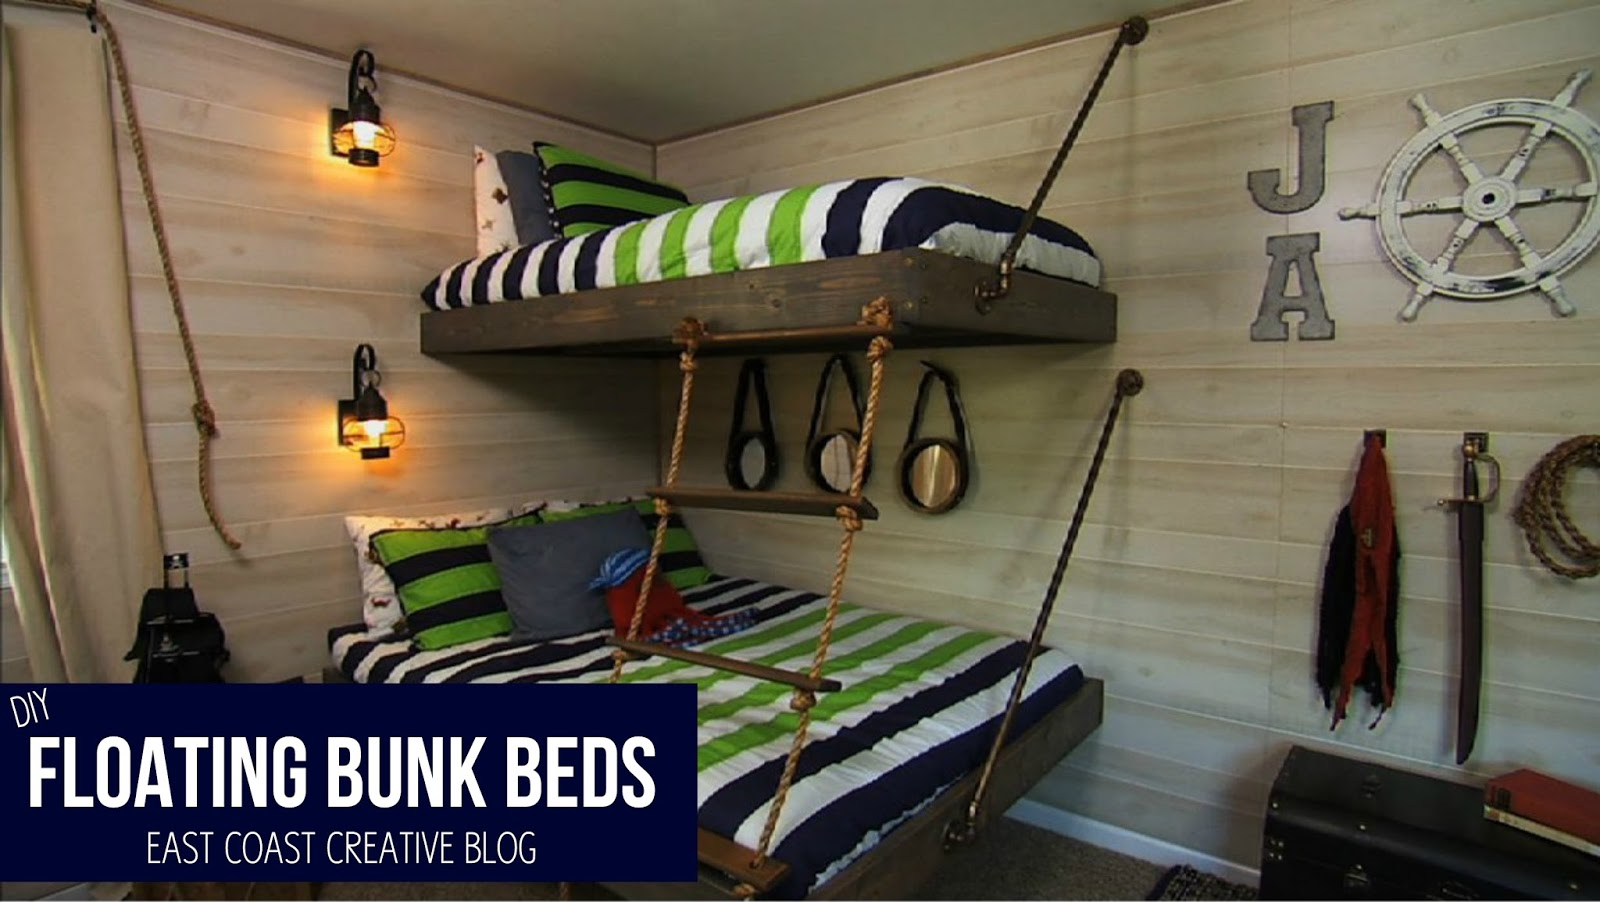 25 Diy Bunk Beds With Plans: Floating Bunk Beds Tutorial {Knock It Off DIY Project}